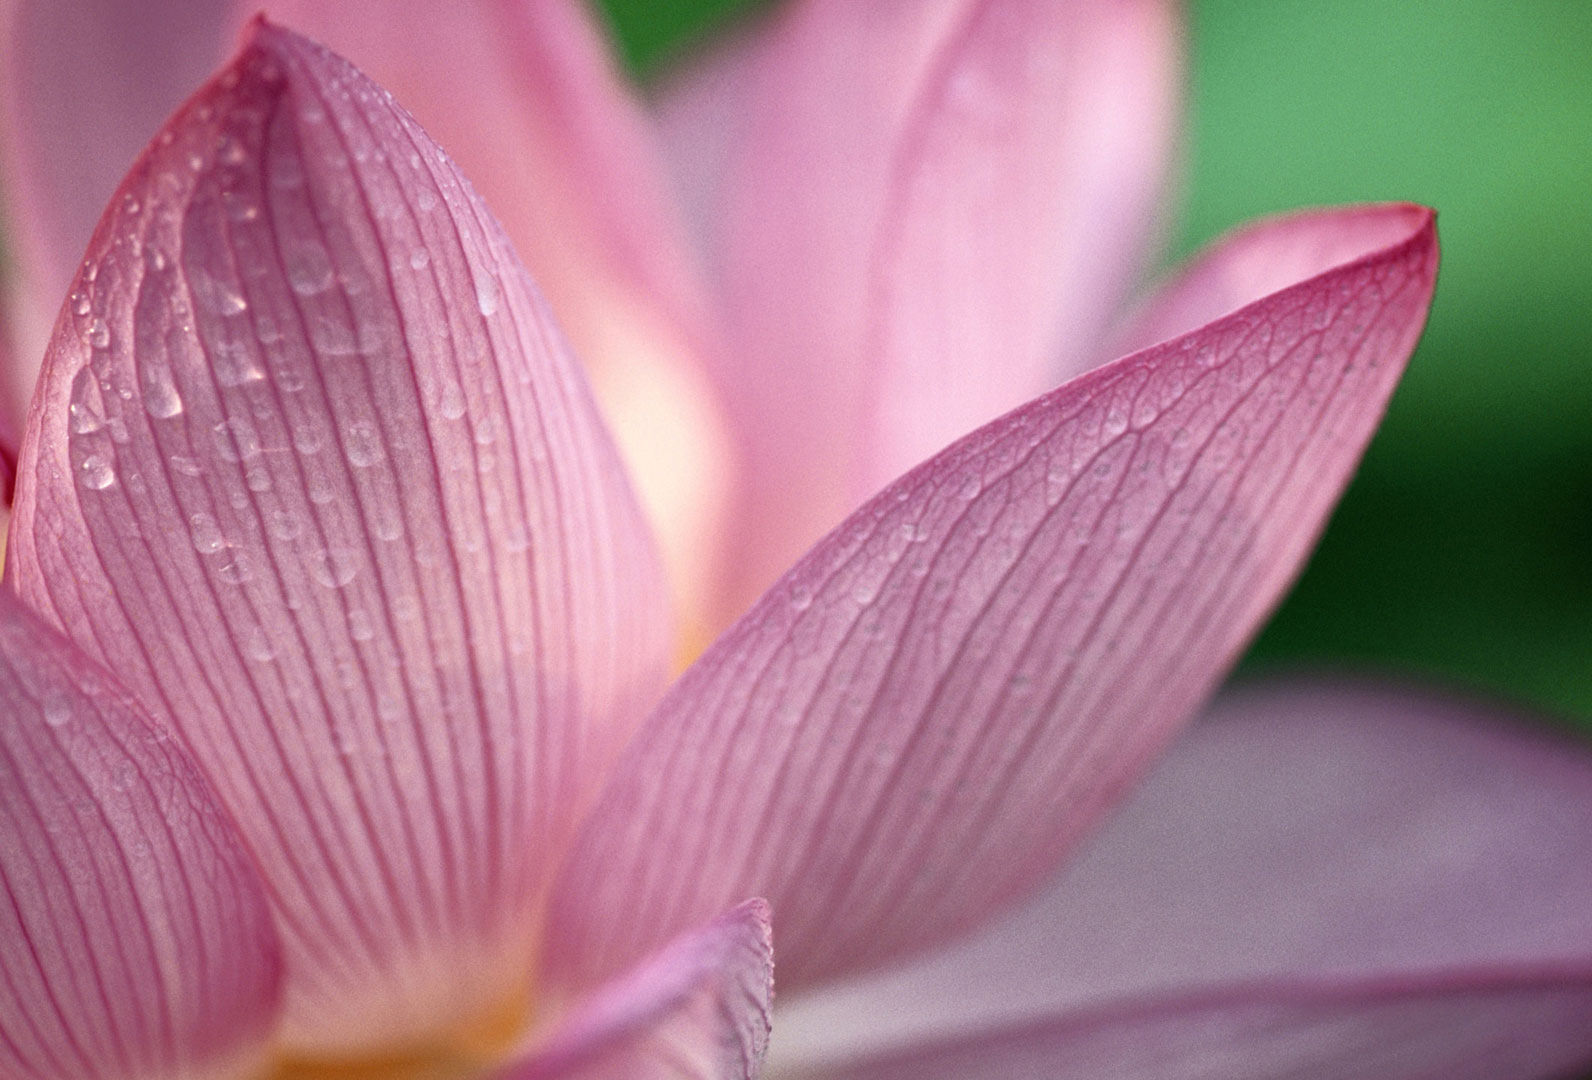 Cool Lotus Flower Background